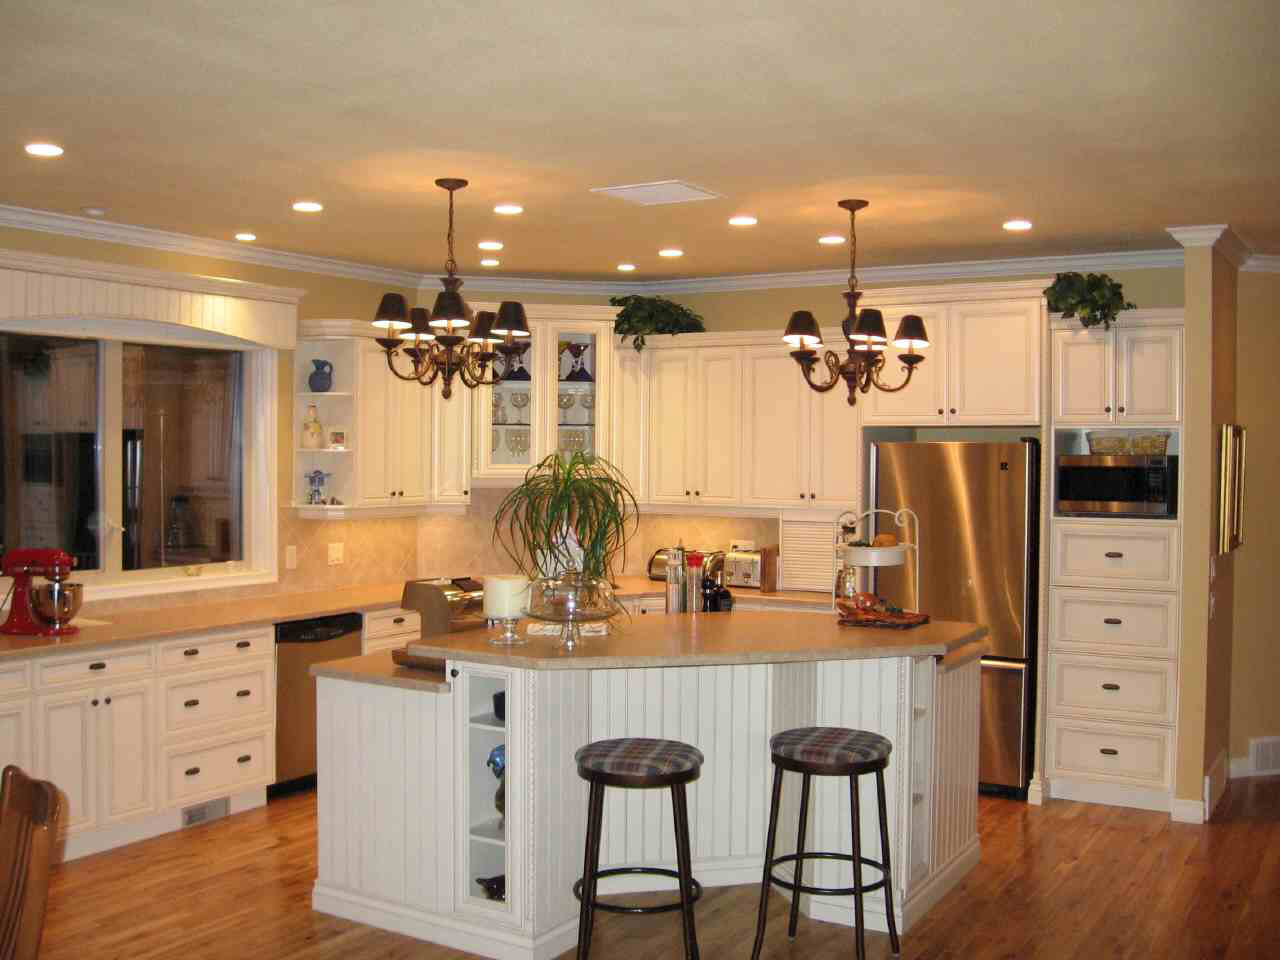 Michigan Kitchen Remodeling, Free Design with 3-D Rendering | Ryan